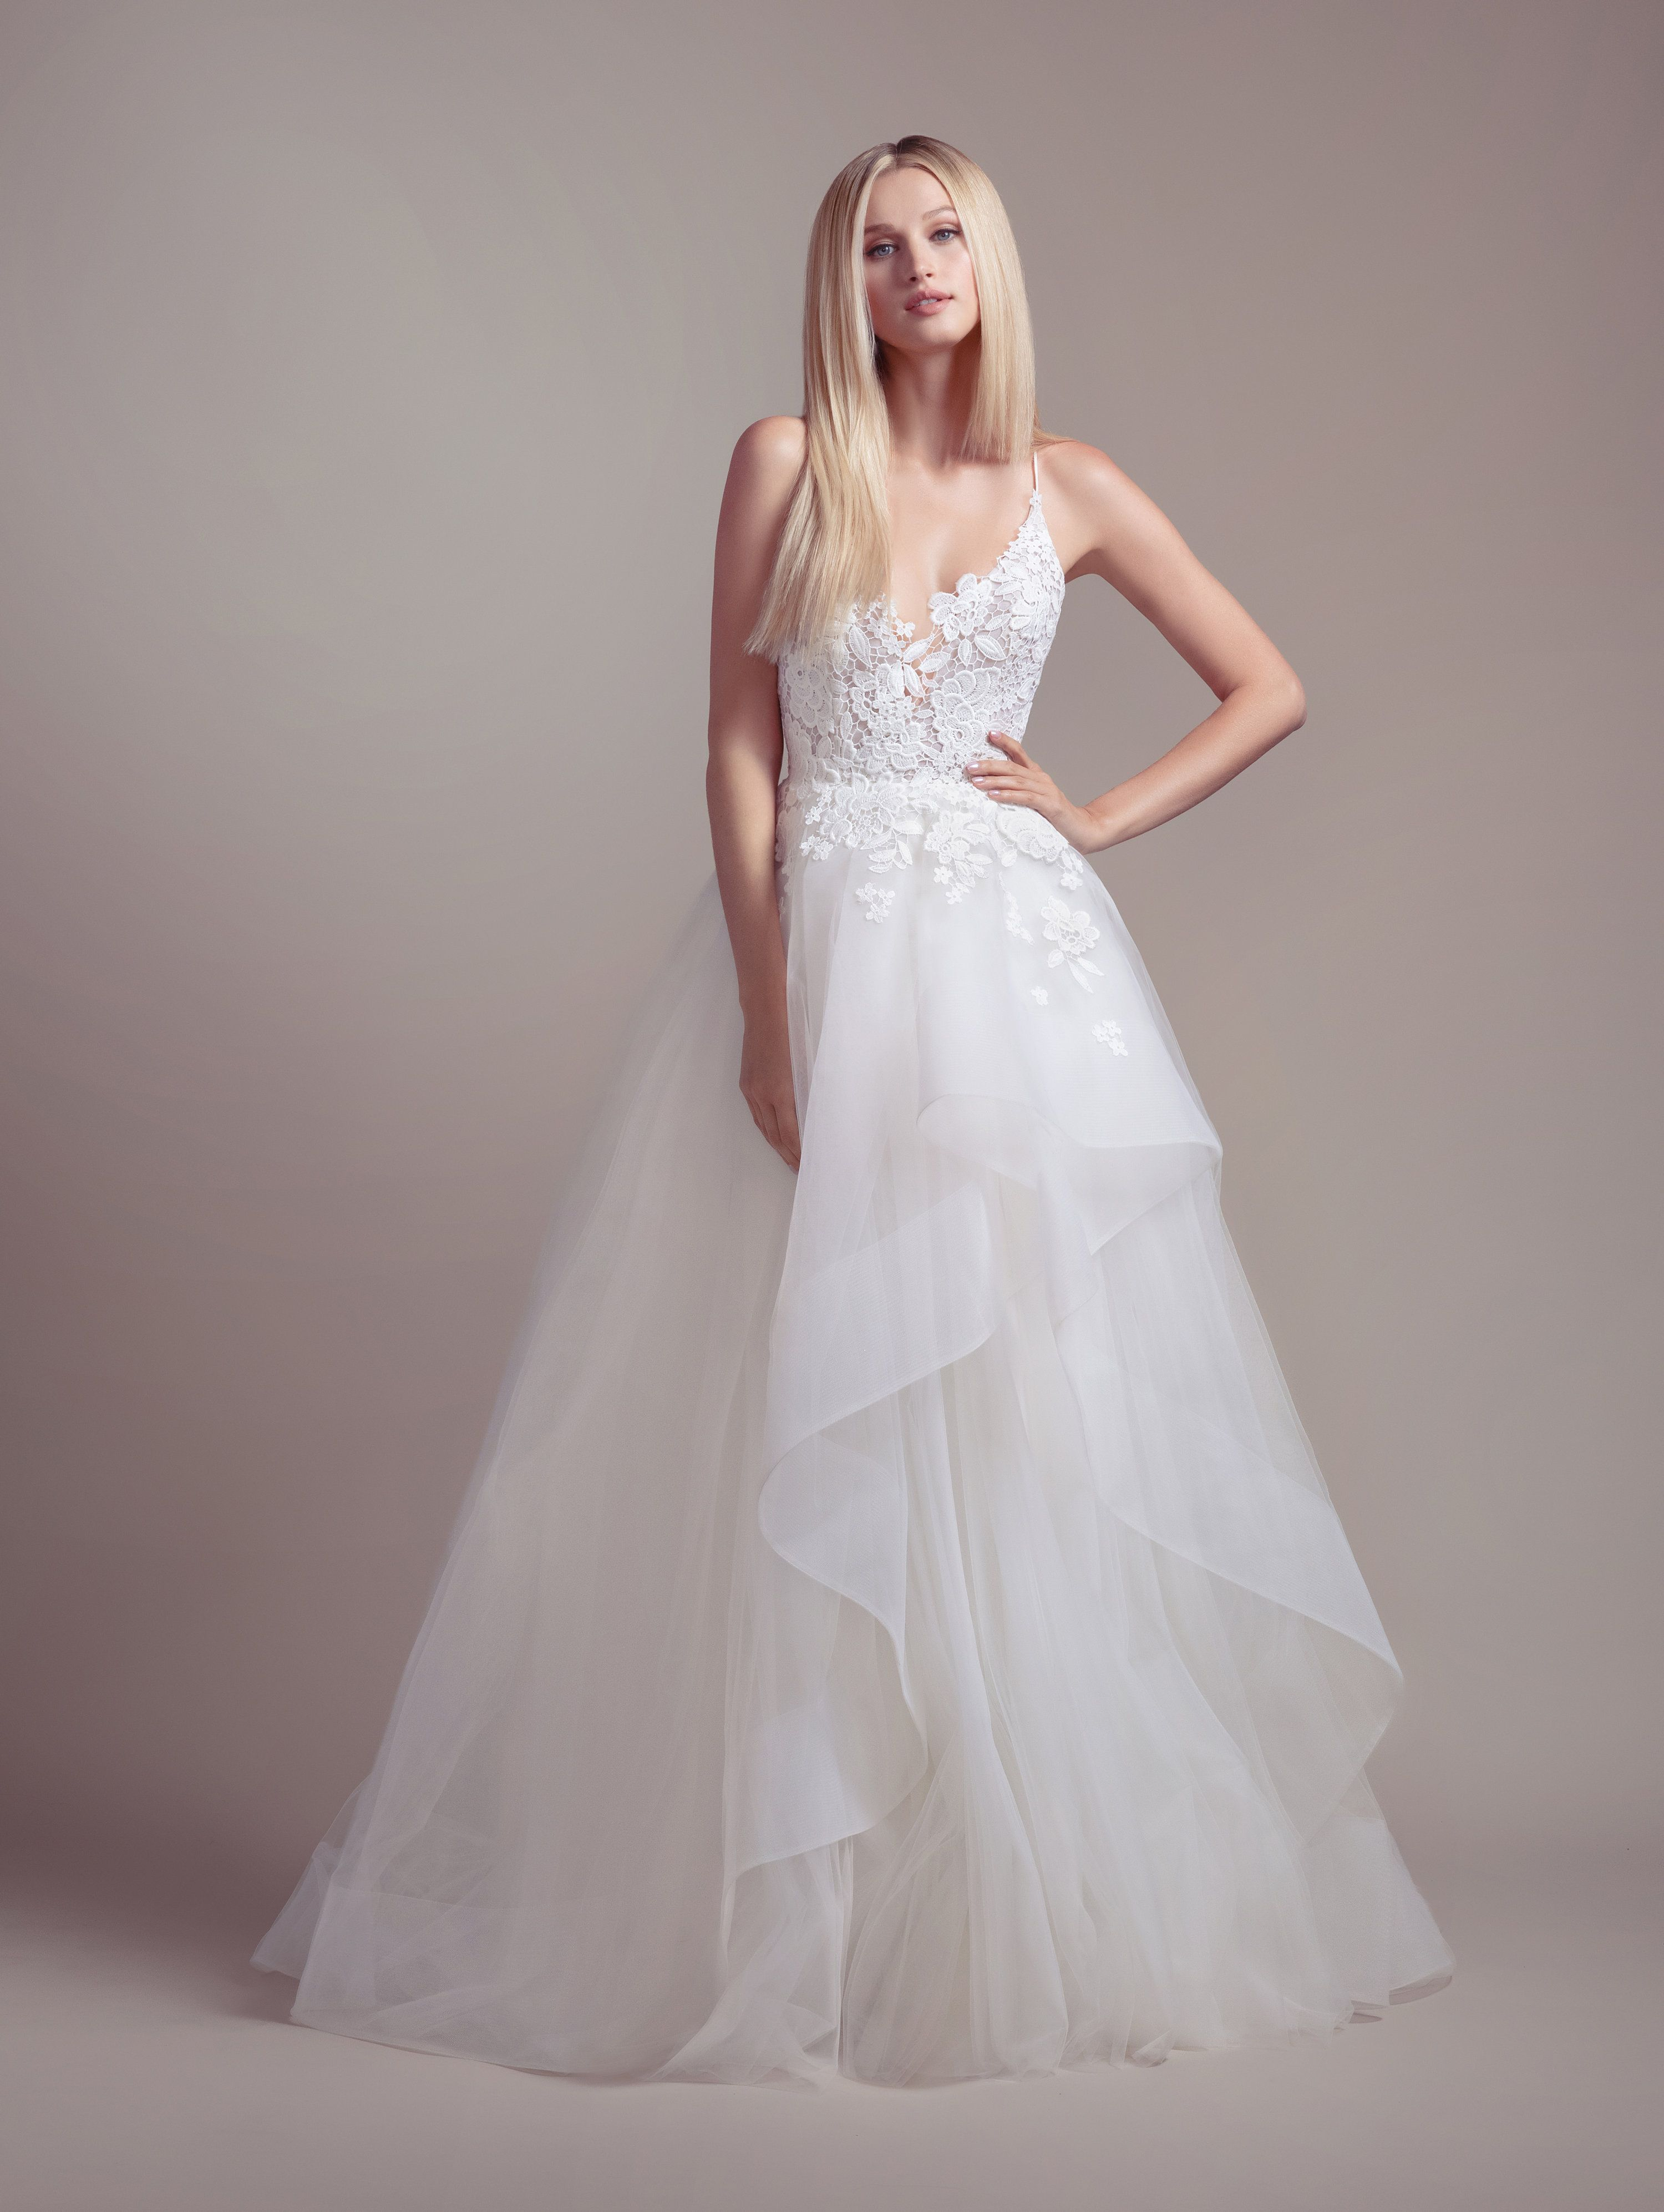 575727f11e56 Bridal Gowns and Wedding Dresses by JLM Couture - Style 1900 Clover ...